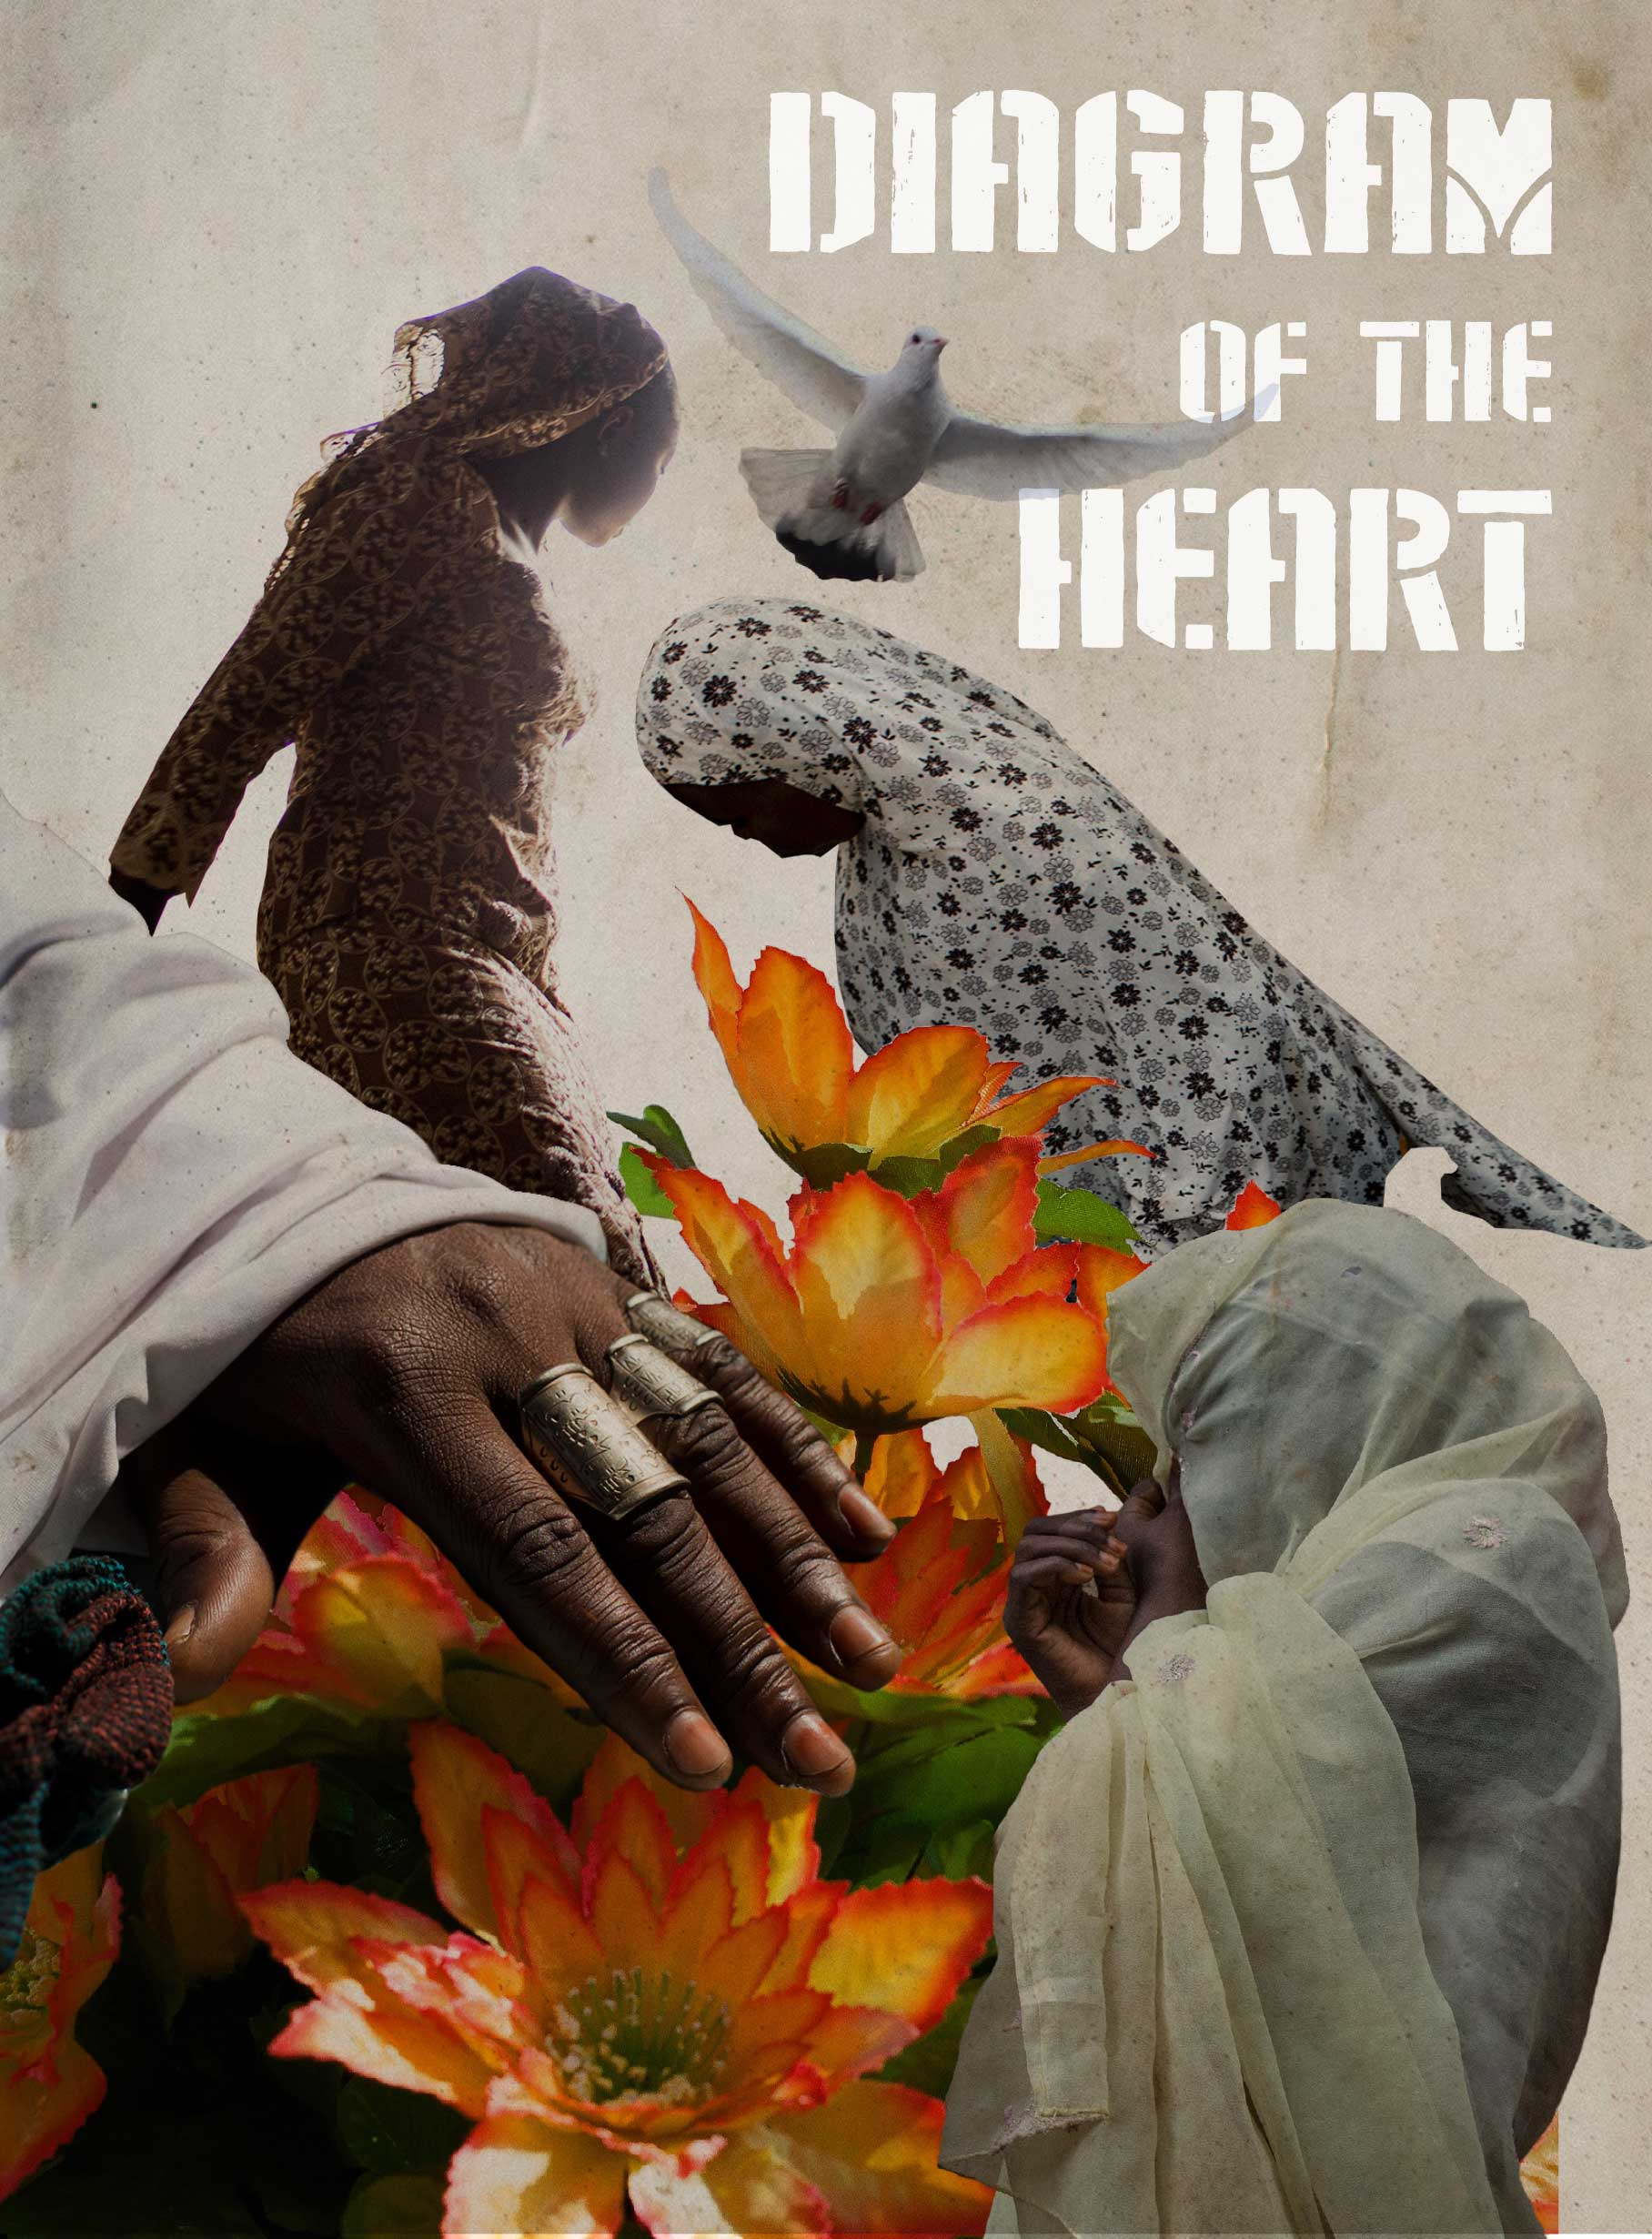 'Diagram of the Heart', by Glenna Gordon, will be released as a photo book on Feb. 11, 2016, published by Red Hook Editions.